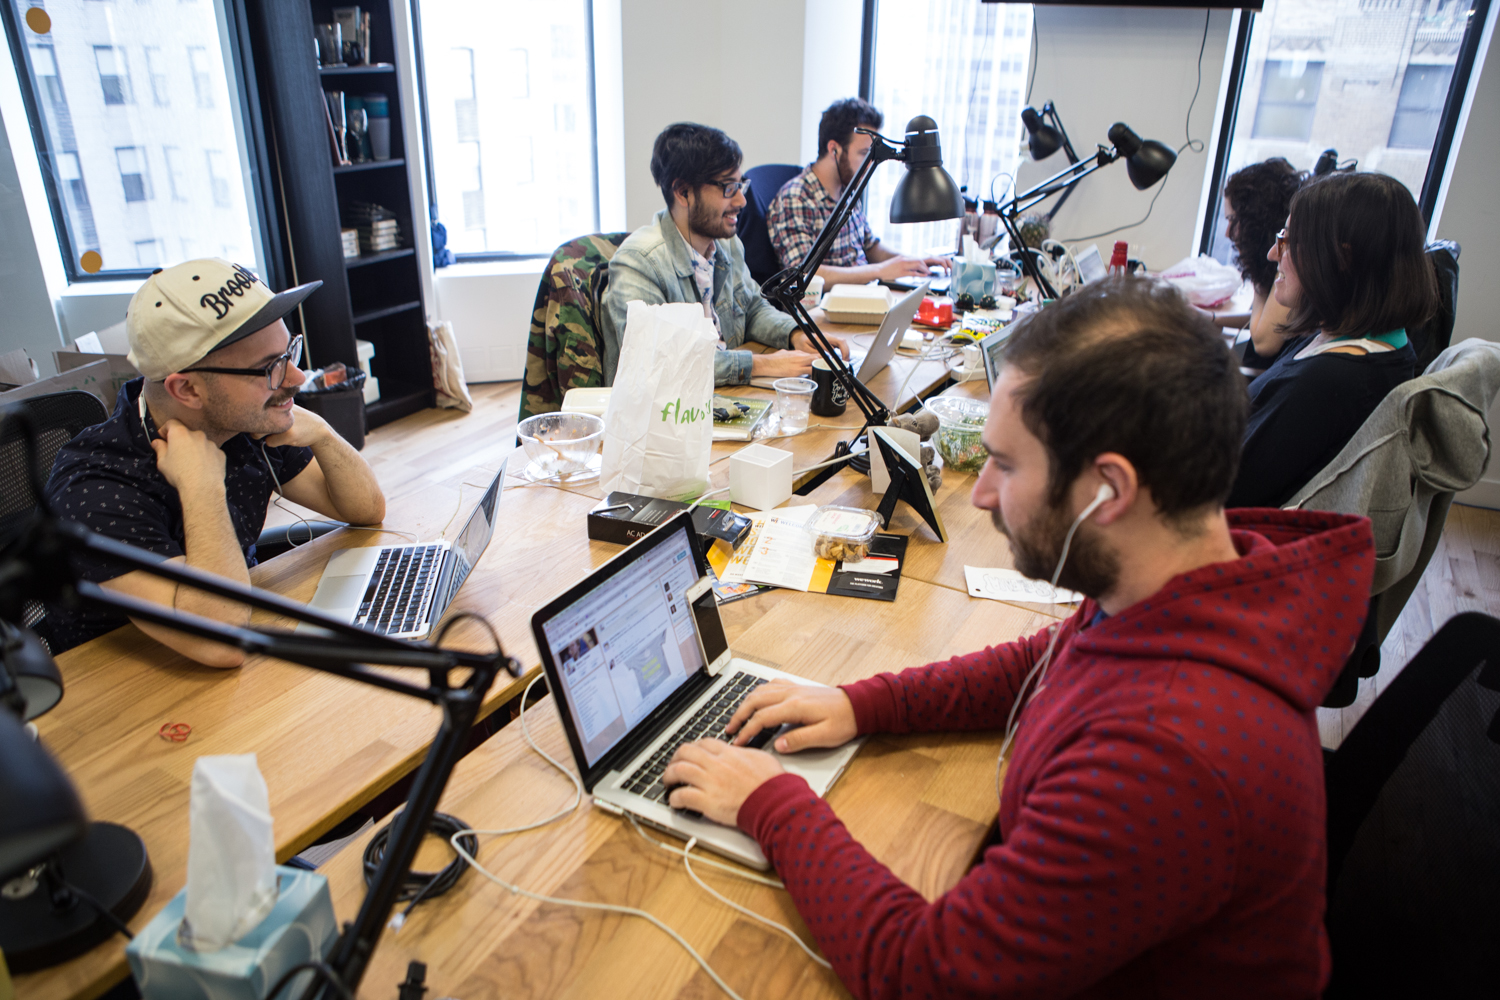 The Daily Dot's NYC office is a small set of rooms at the back of a new coworking space near Wall Street. Only a year ago, they were a few people working from a coffee shop in Brooklyn. (Photo: Arman Dzidzovic/New York Observer)